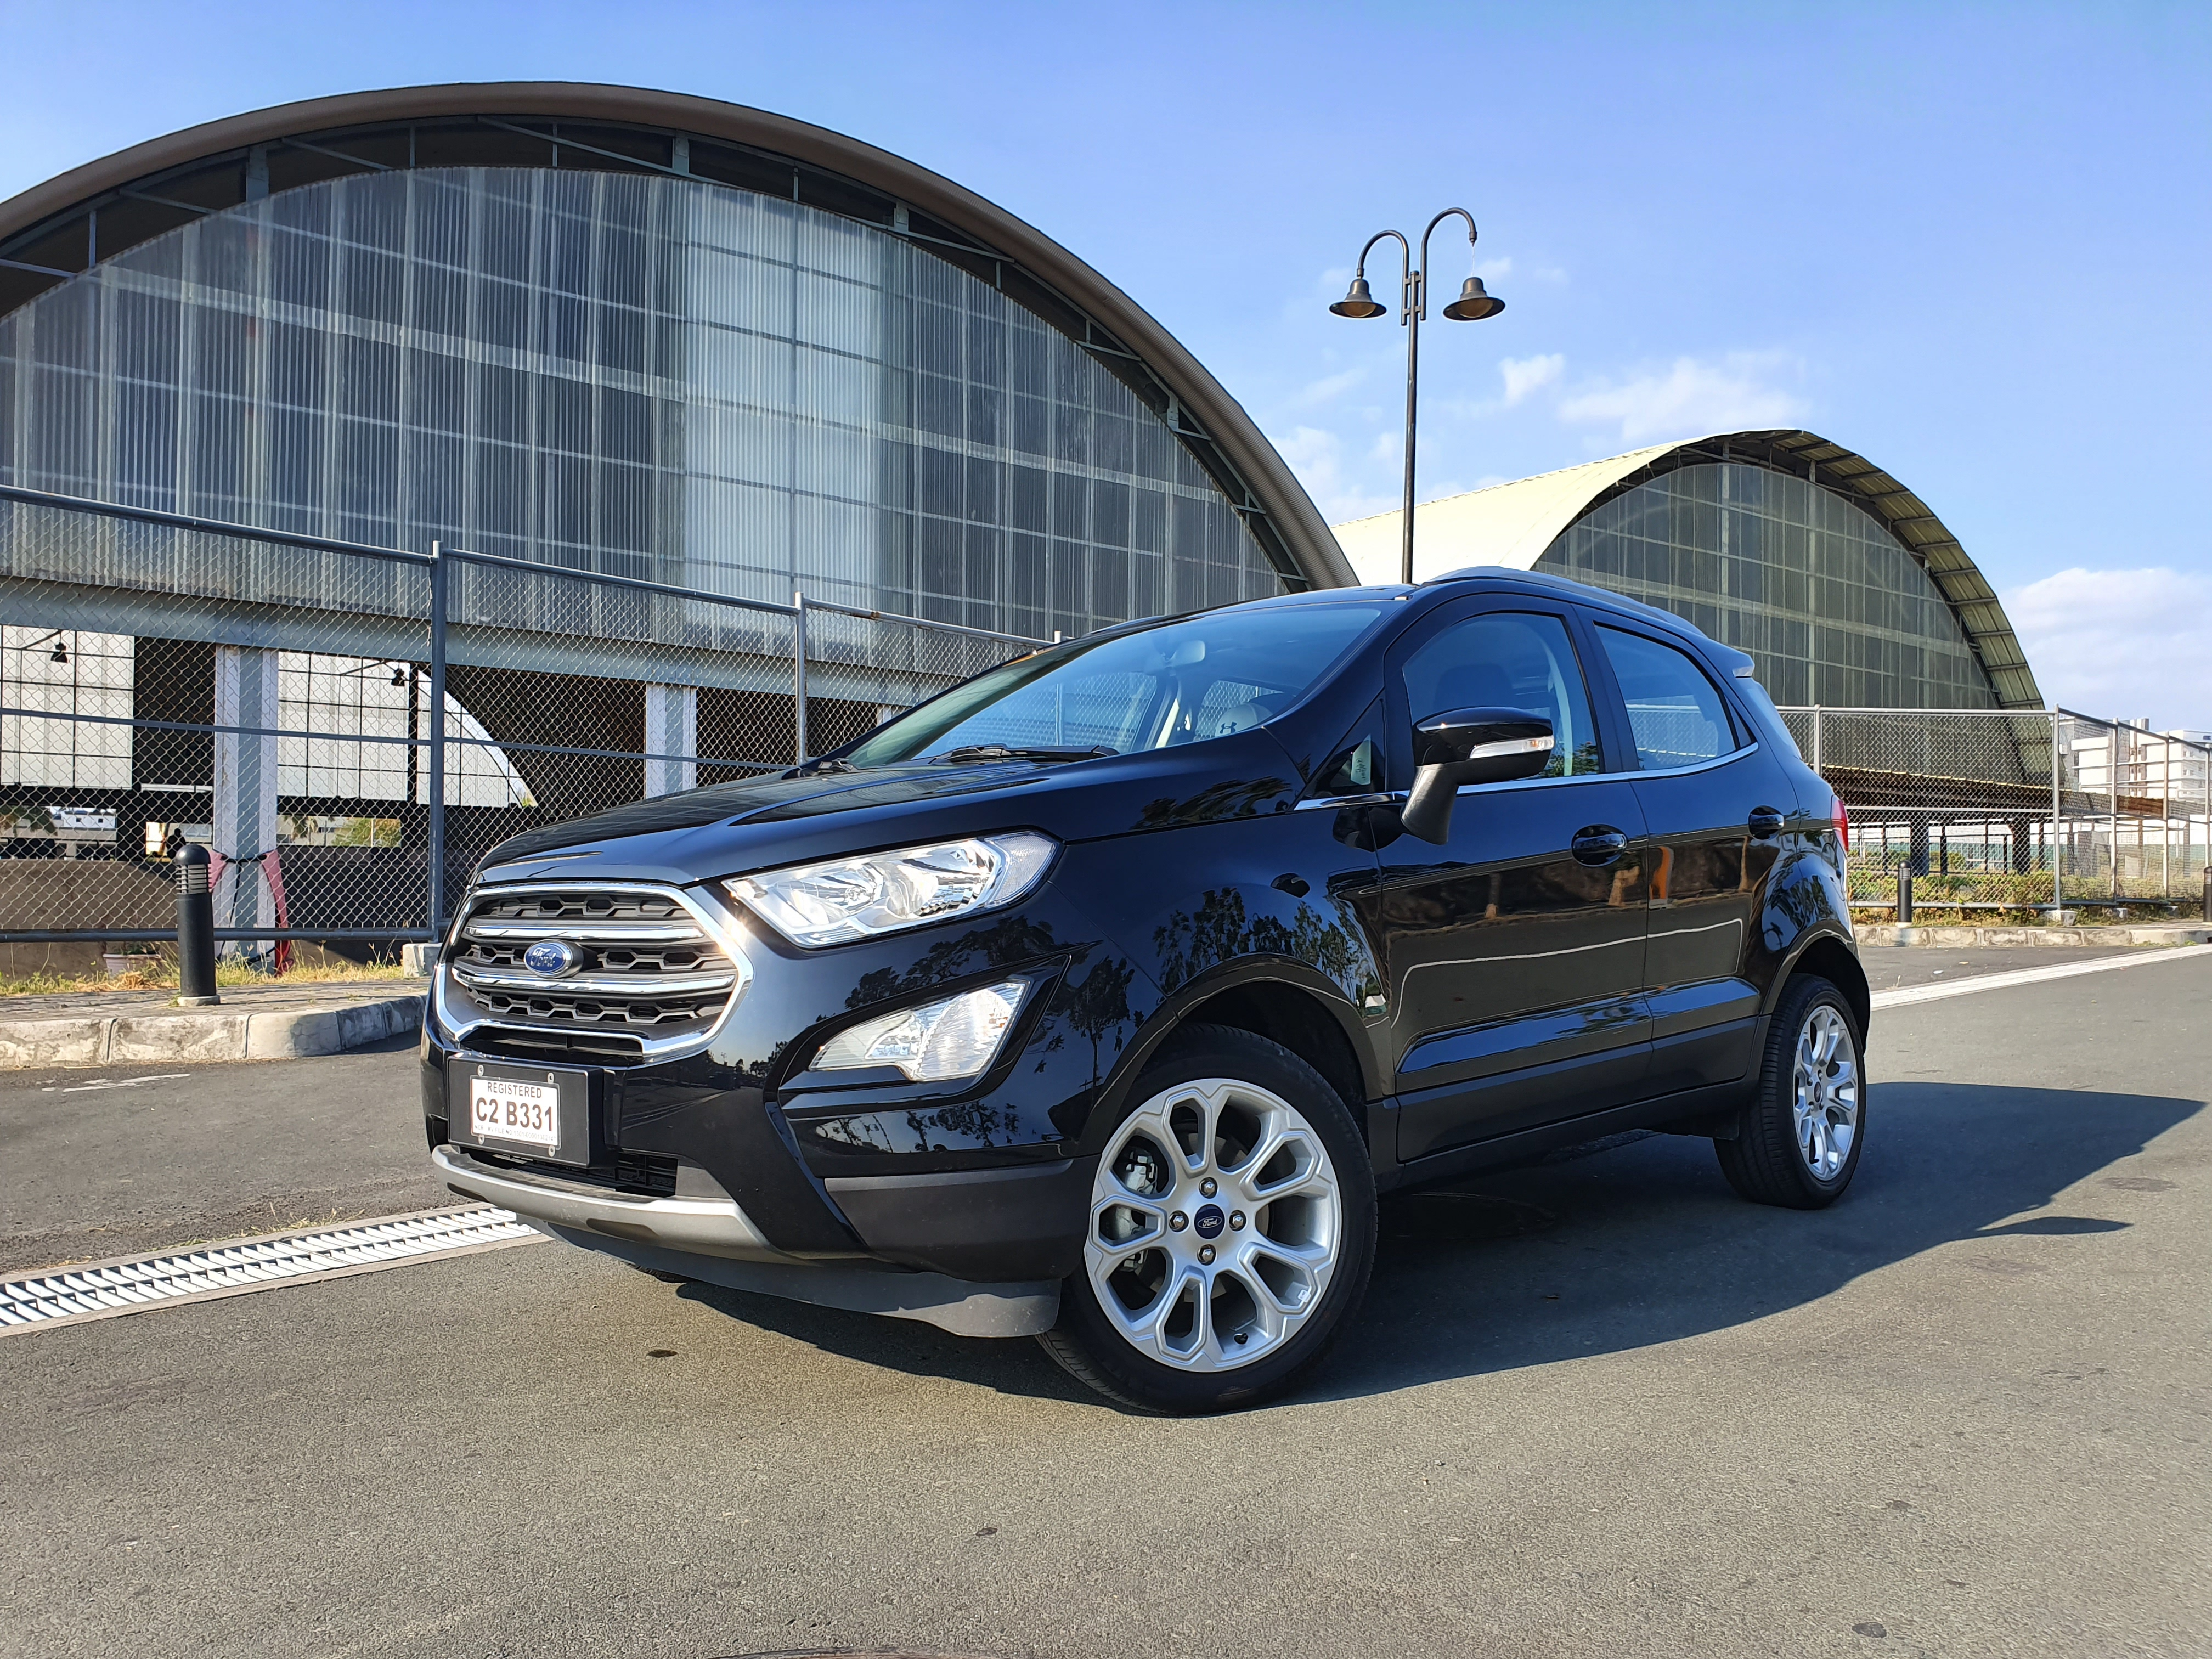 Ford Ecosport 2019 The Almost Perfect Crossover For The Philippines Yugatech Philippines Tech News Reviews